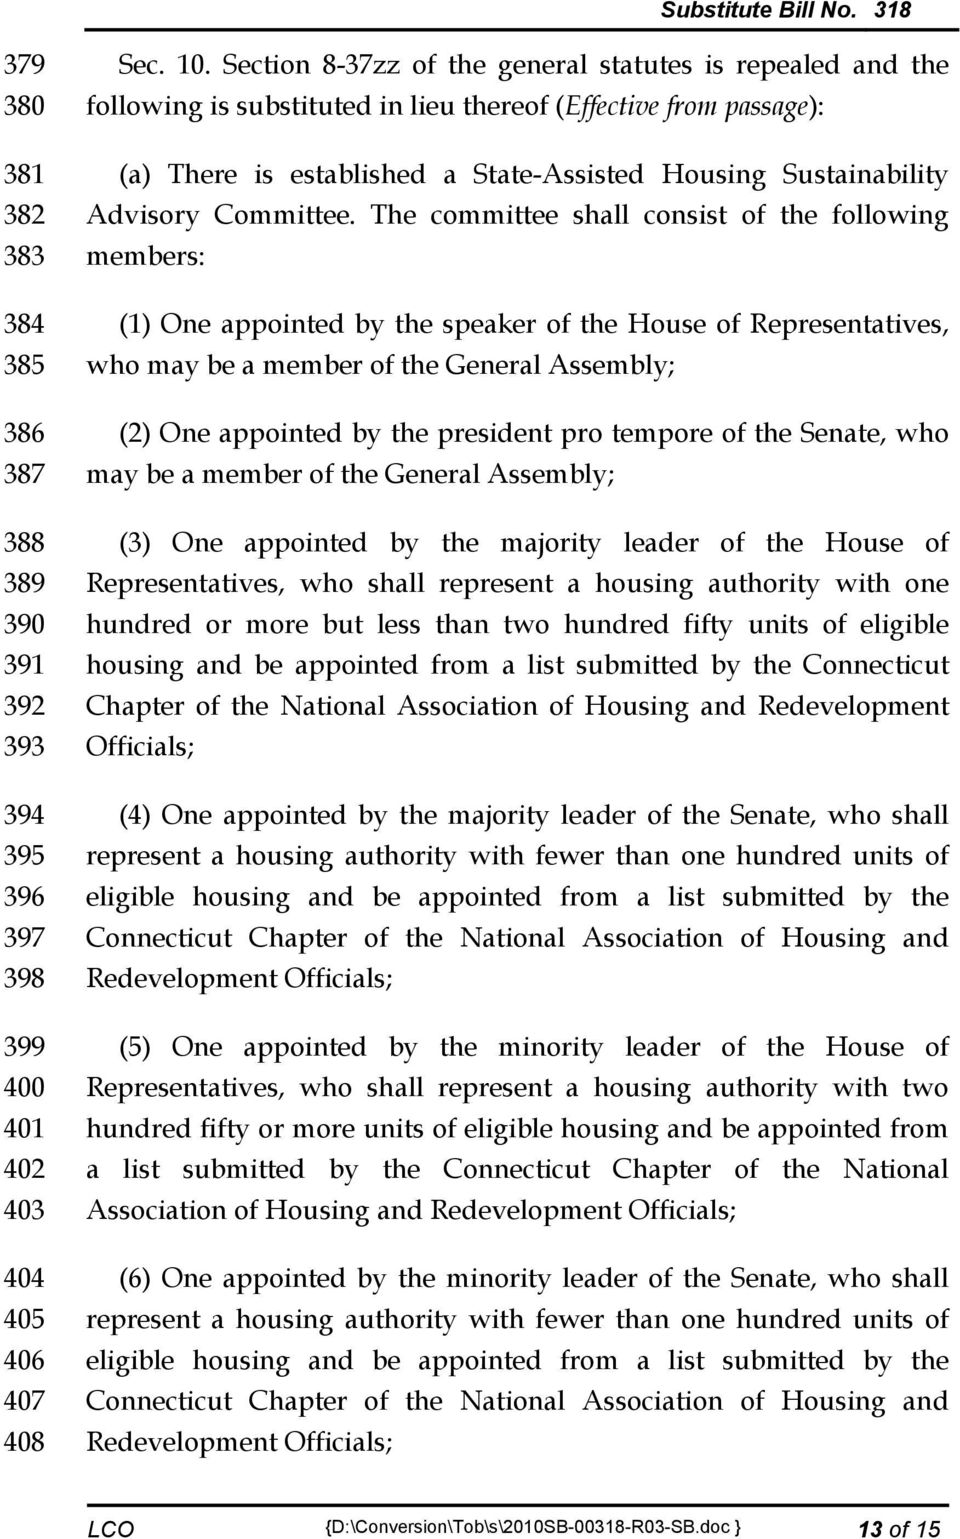 The committee shall consist of the following members: (1) One appointed by the speaker of the House of Representatives, who may be a member of the General Assembly; (2) One appointed by the president